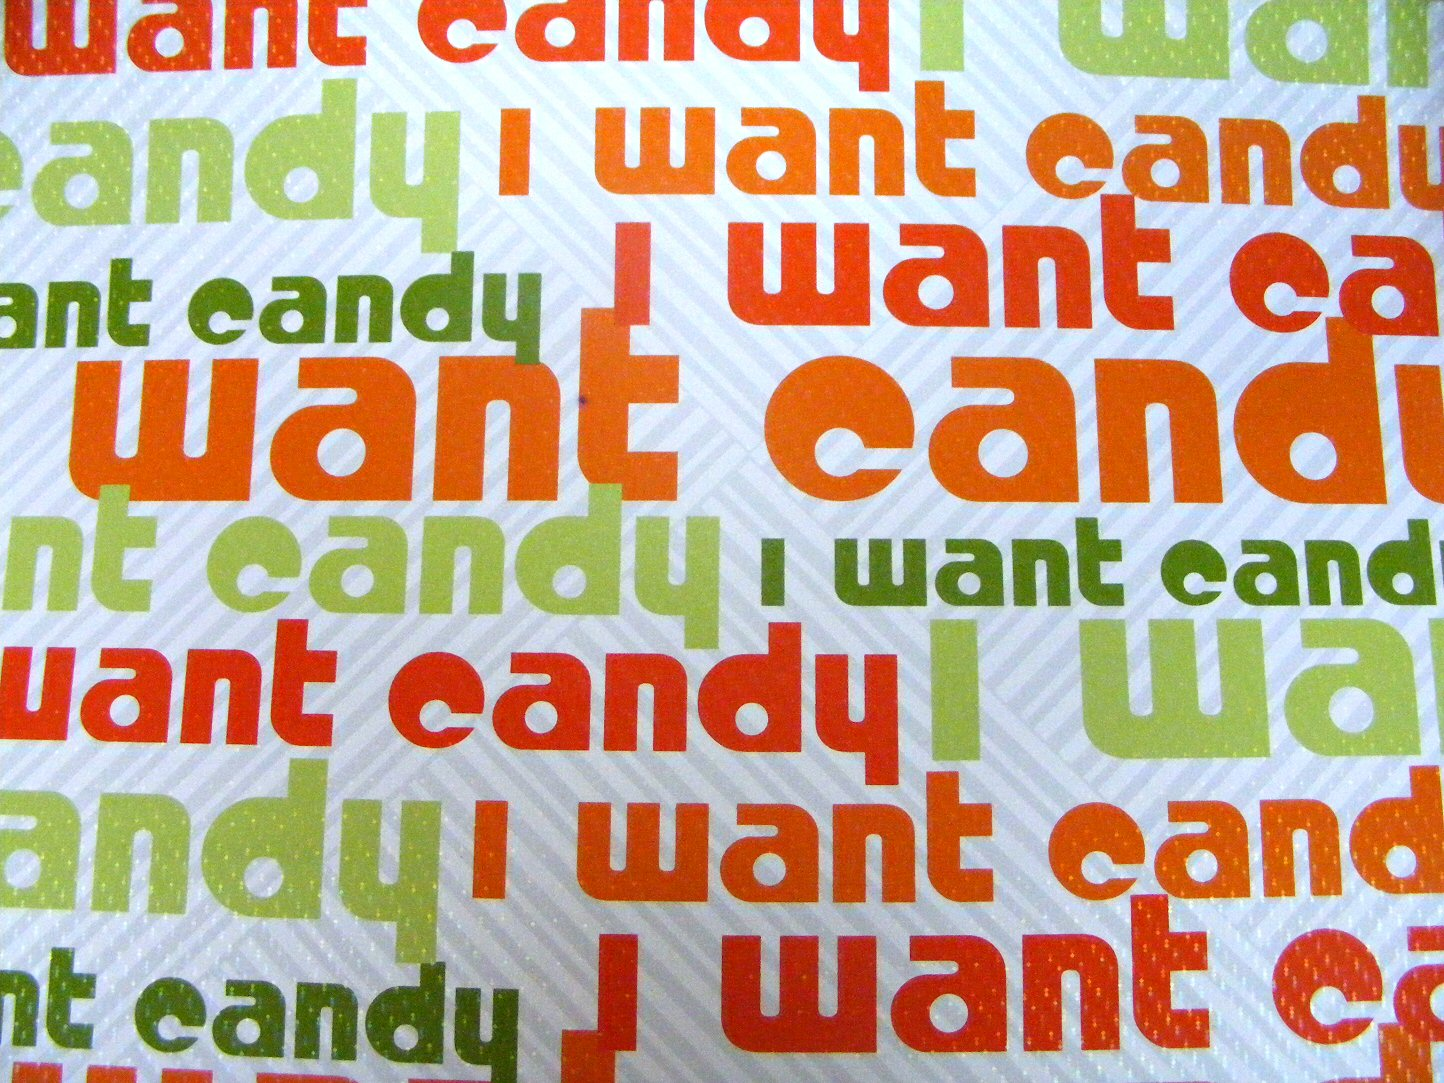 I Want Candy Wallpaper